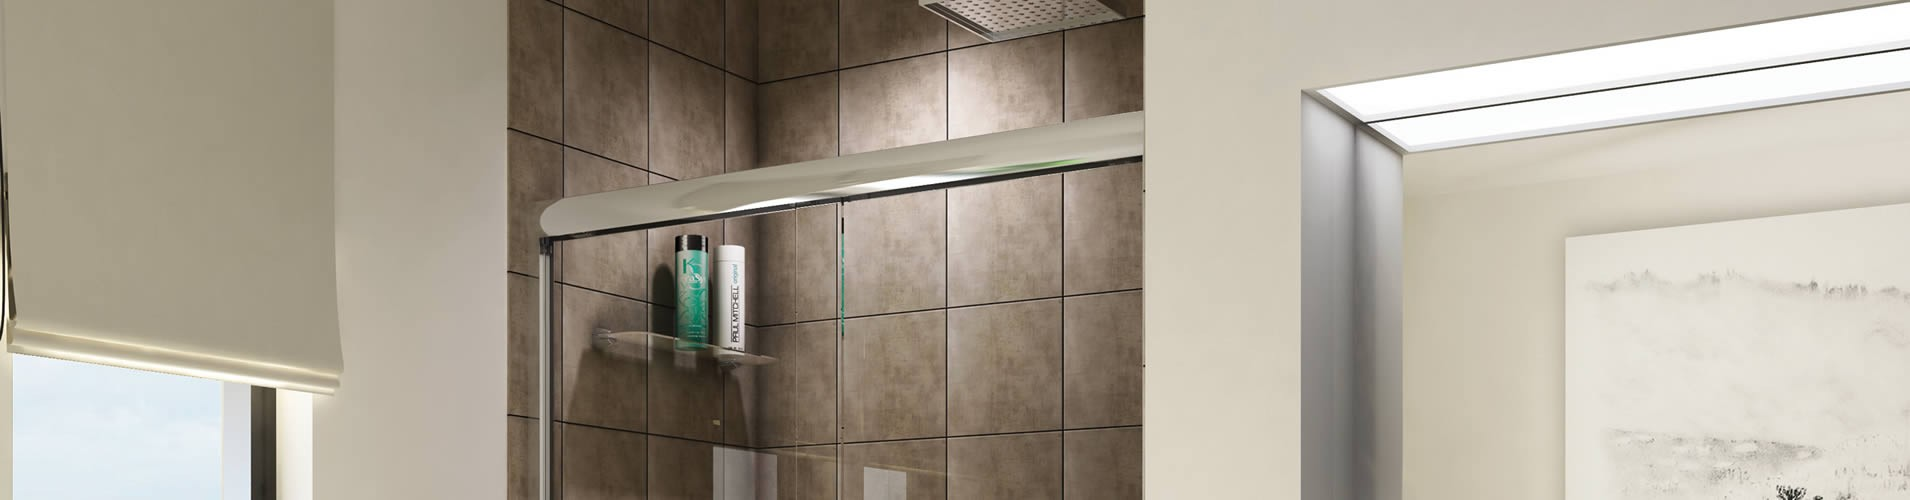 Semi-Frameless Glass Shower Doors - Atlanta, Georgia